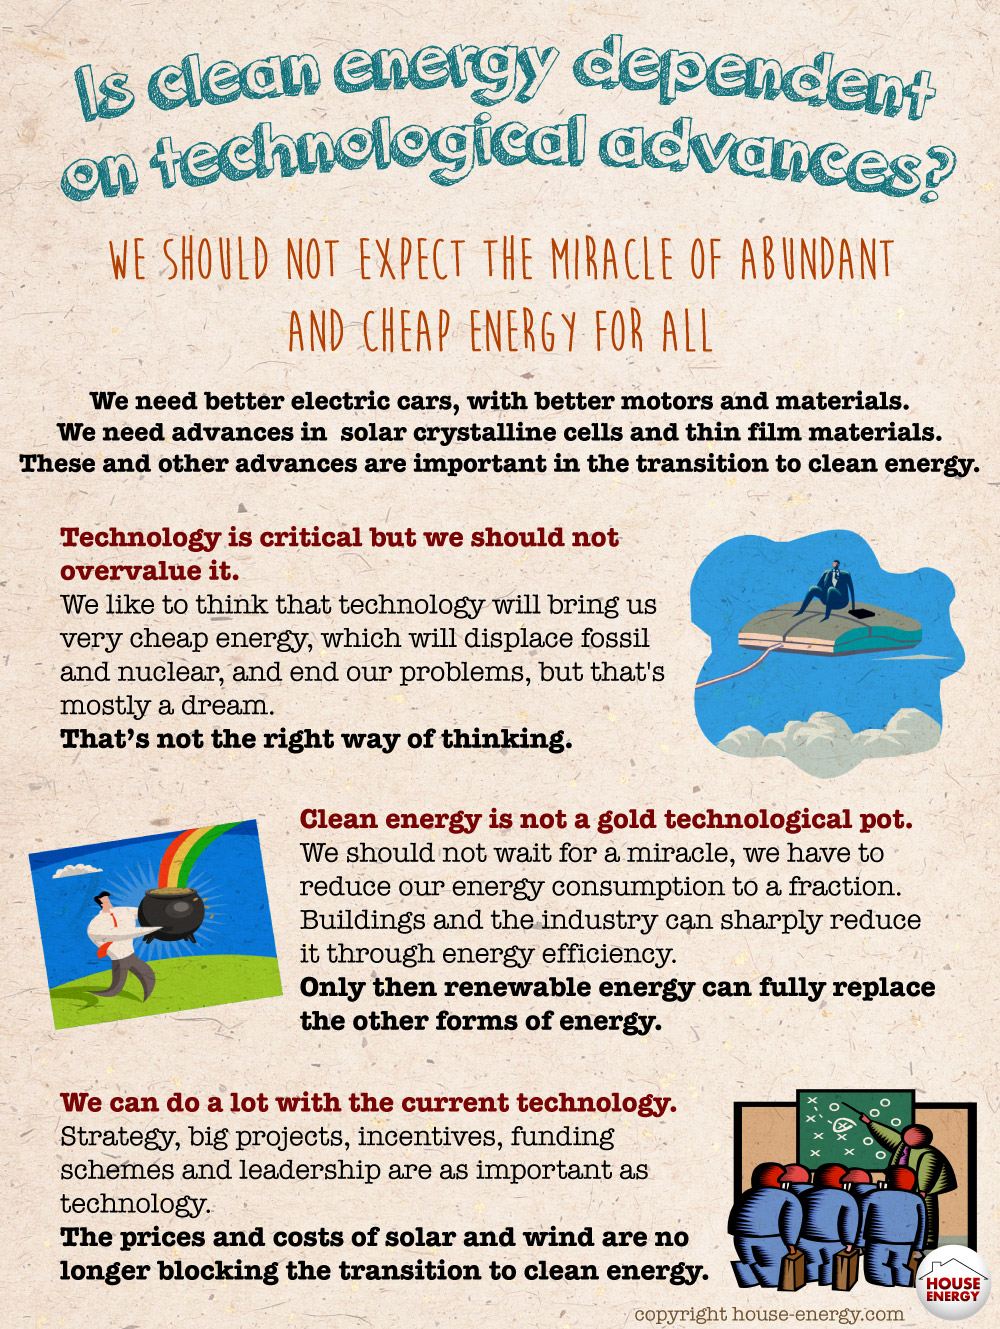 Is clean energy dependent on technological advances